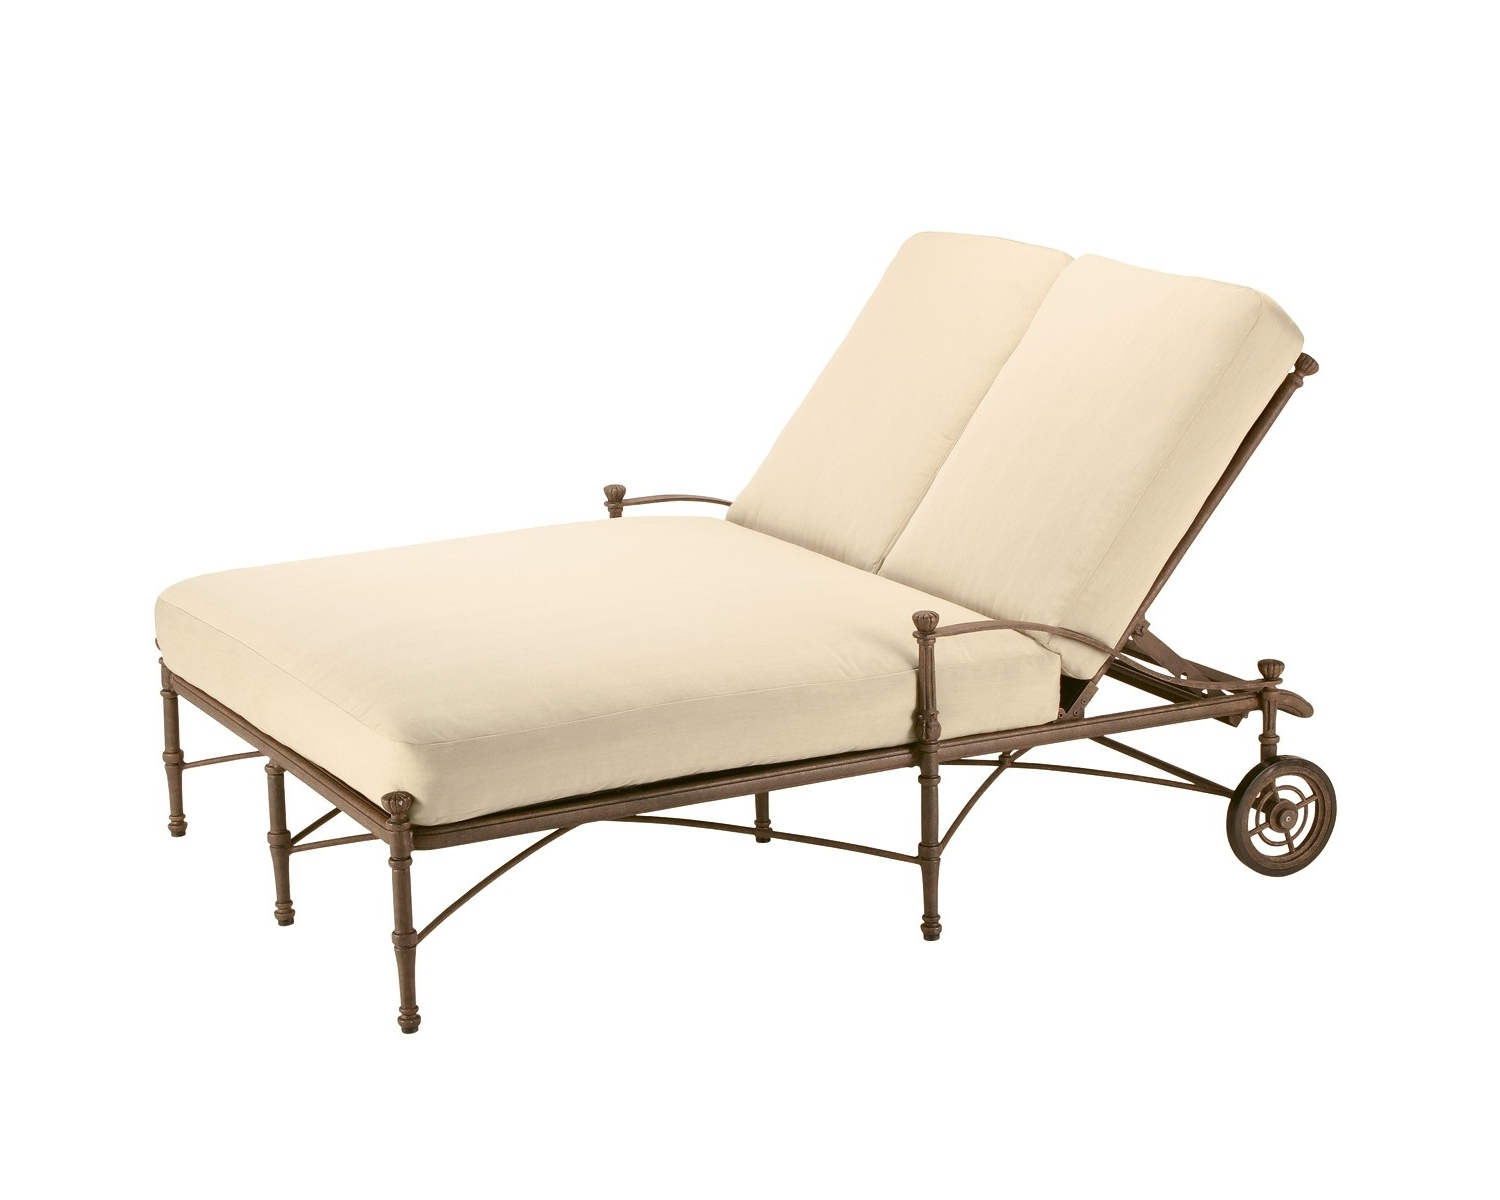 Well Known Kettler Chaise Lounge Chairs Pertaining To Outdoor Patio Furniture Sale Sling Chaise Lounge White Outdoor (View 14 of 15)